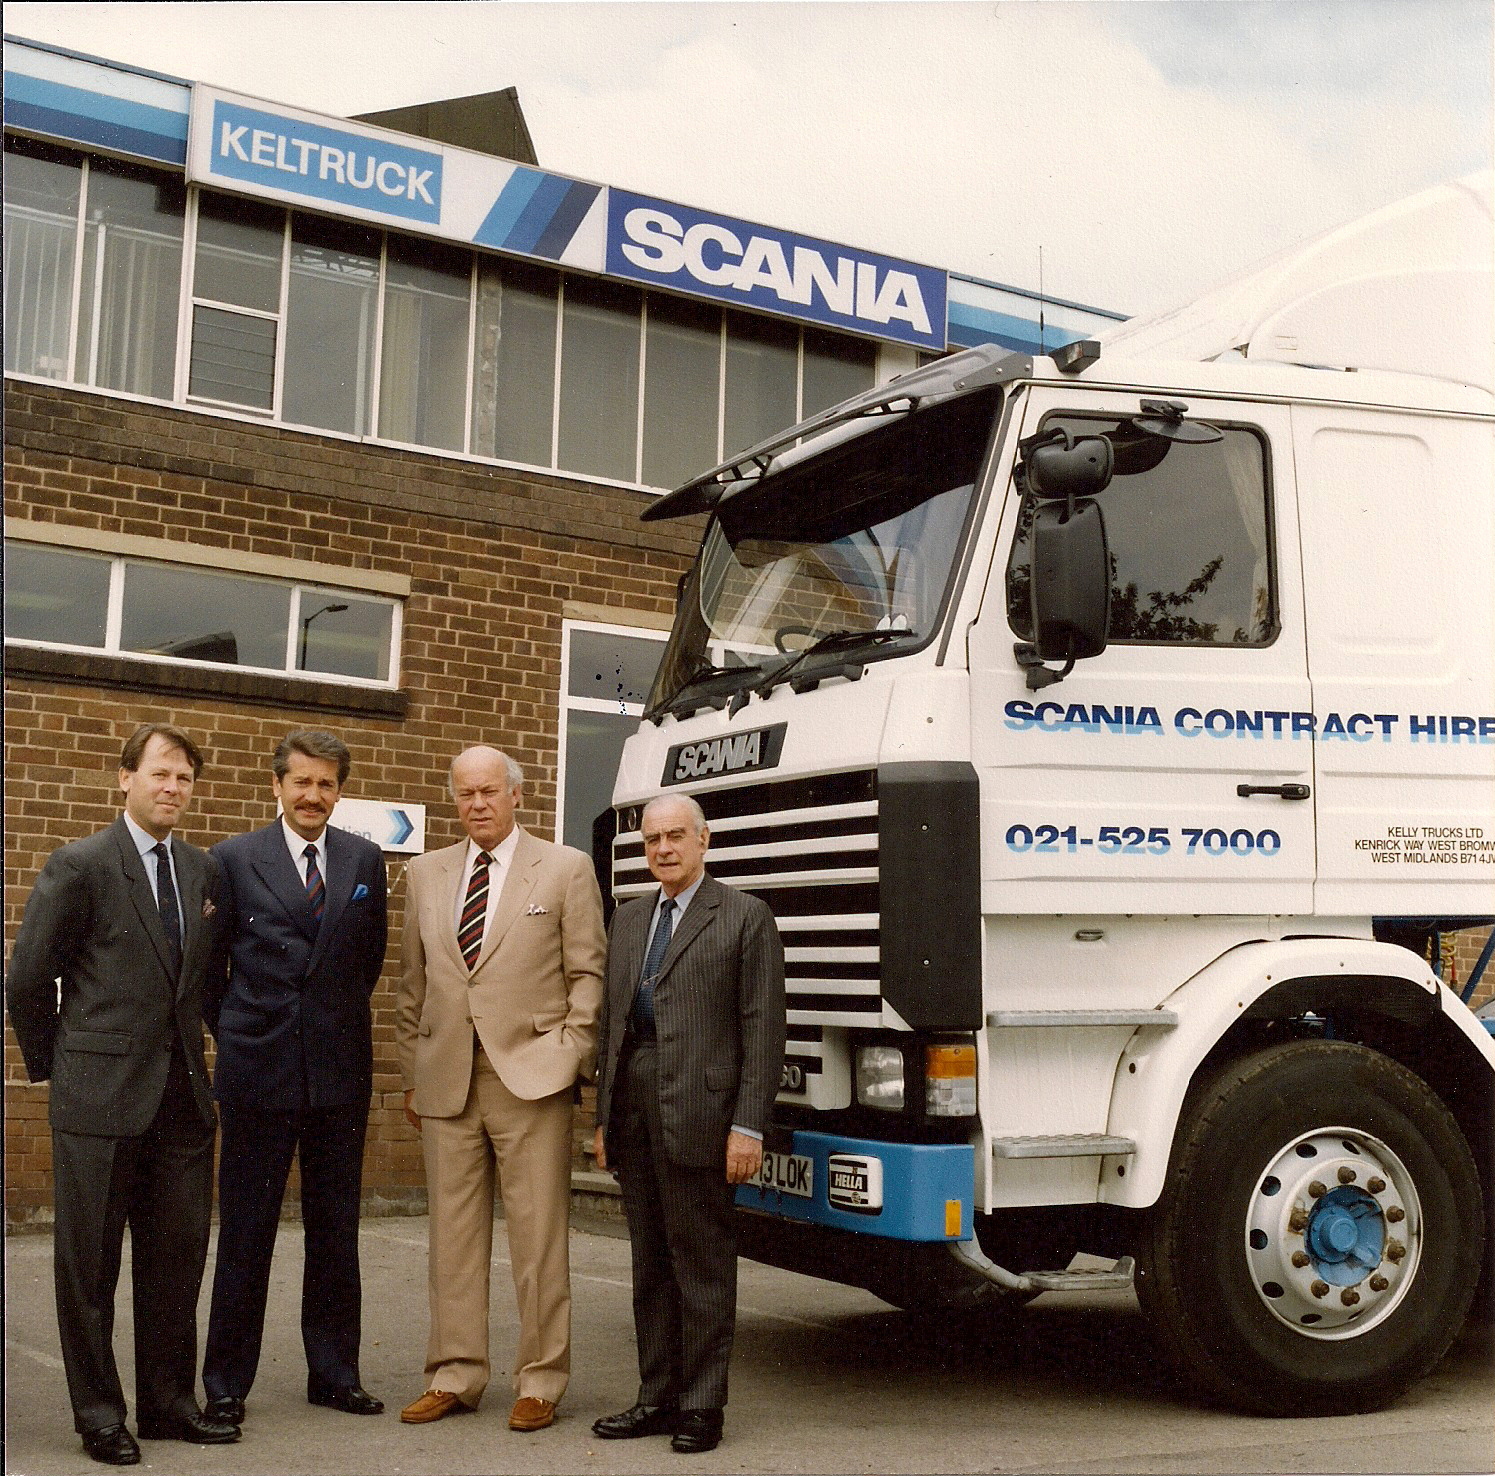 Dieter Merz (Scania (Great Britain) Limited), Chris Kelly (Keltruck Limited), Sir Eric Pountain DL (Tarmac plc) & Brig. Sir Louis Hargroves CBE DL (Keltruck Limited)